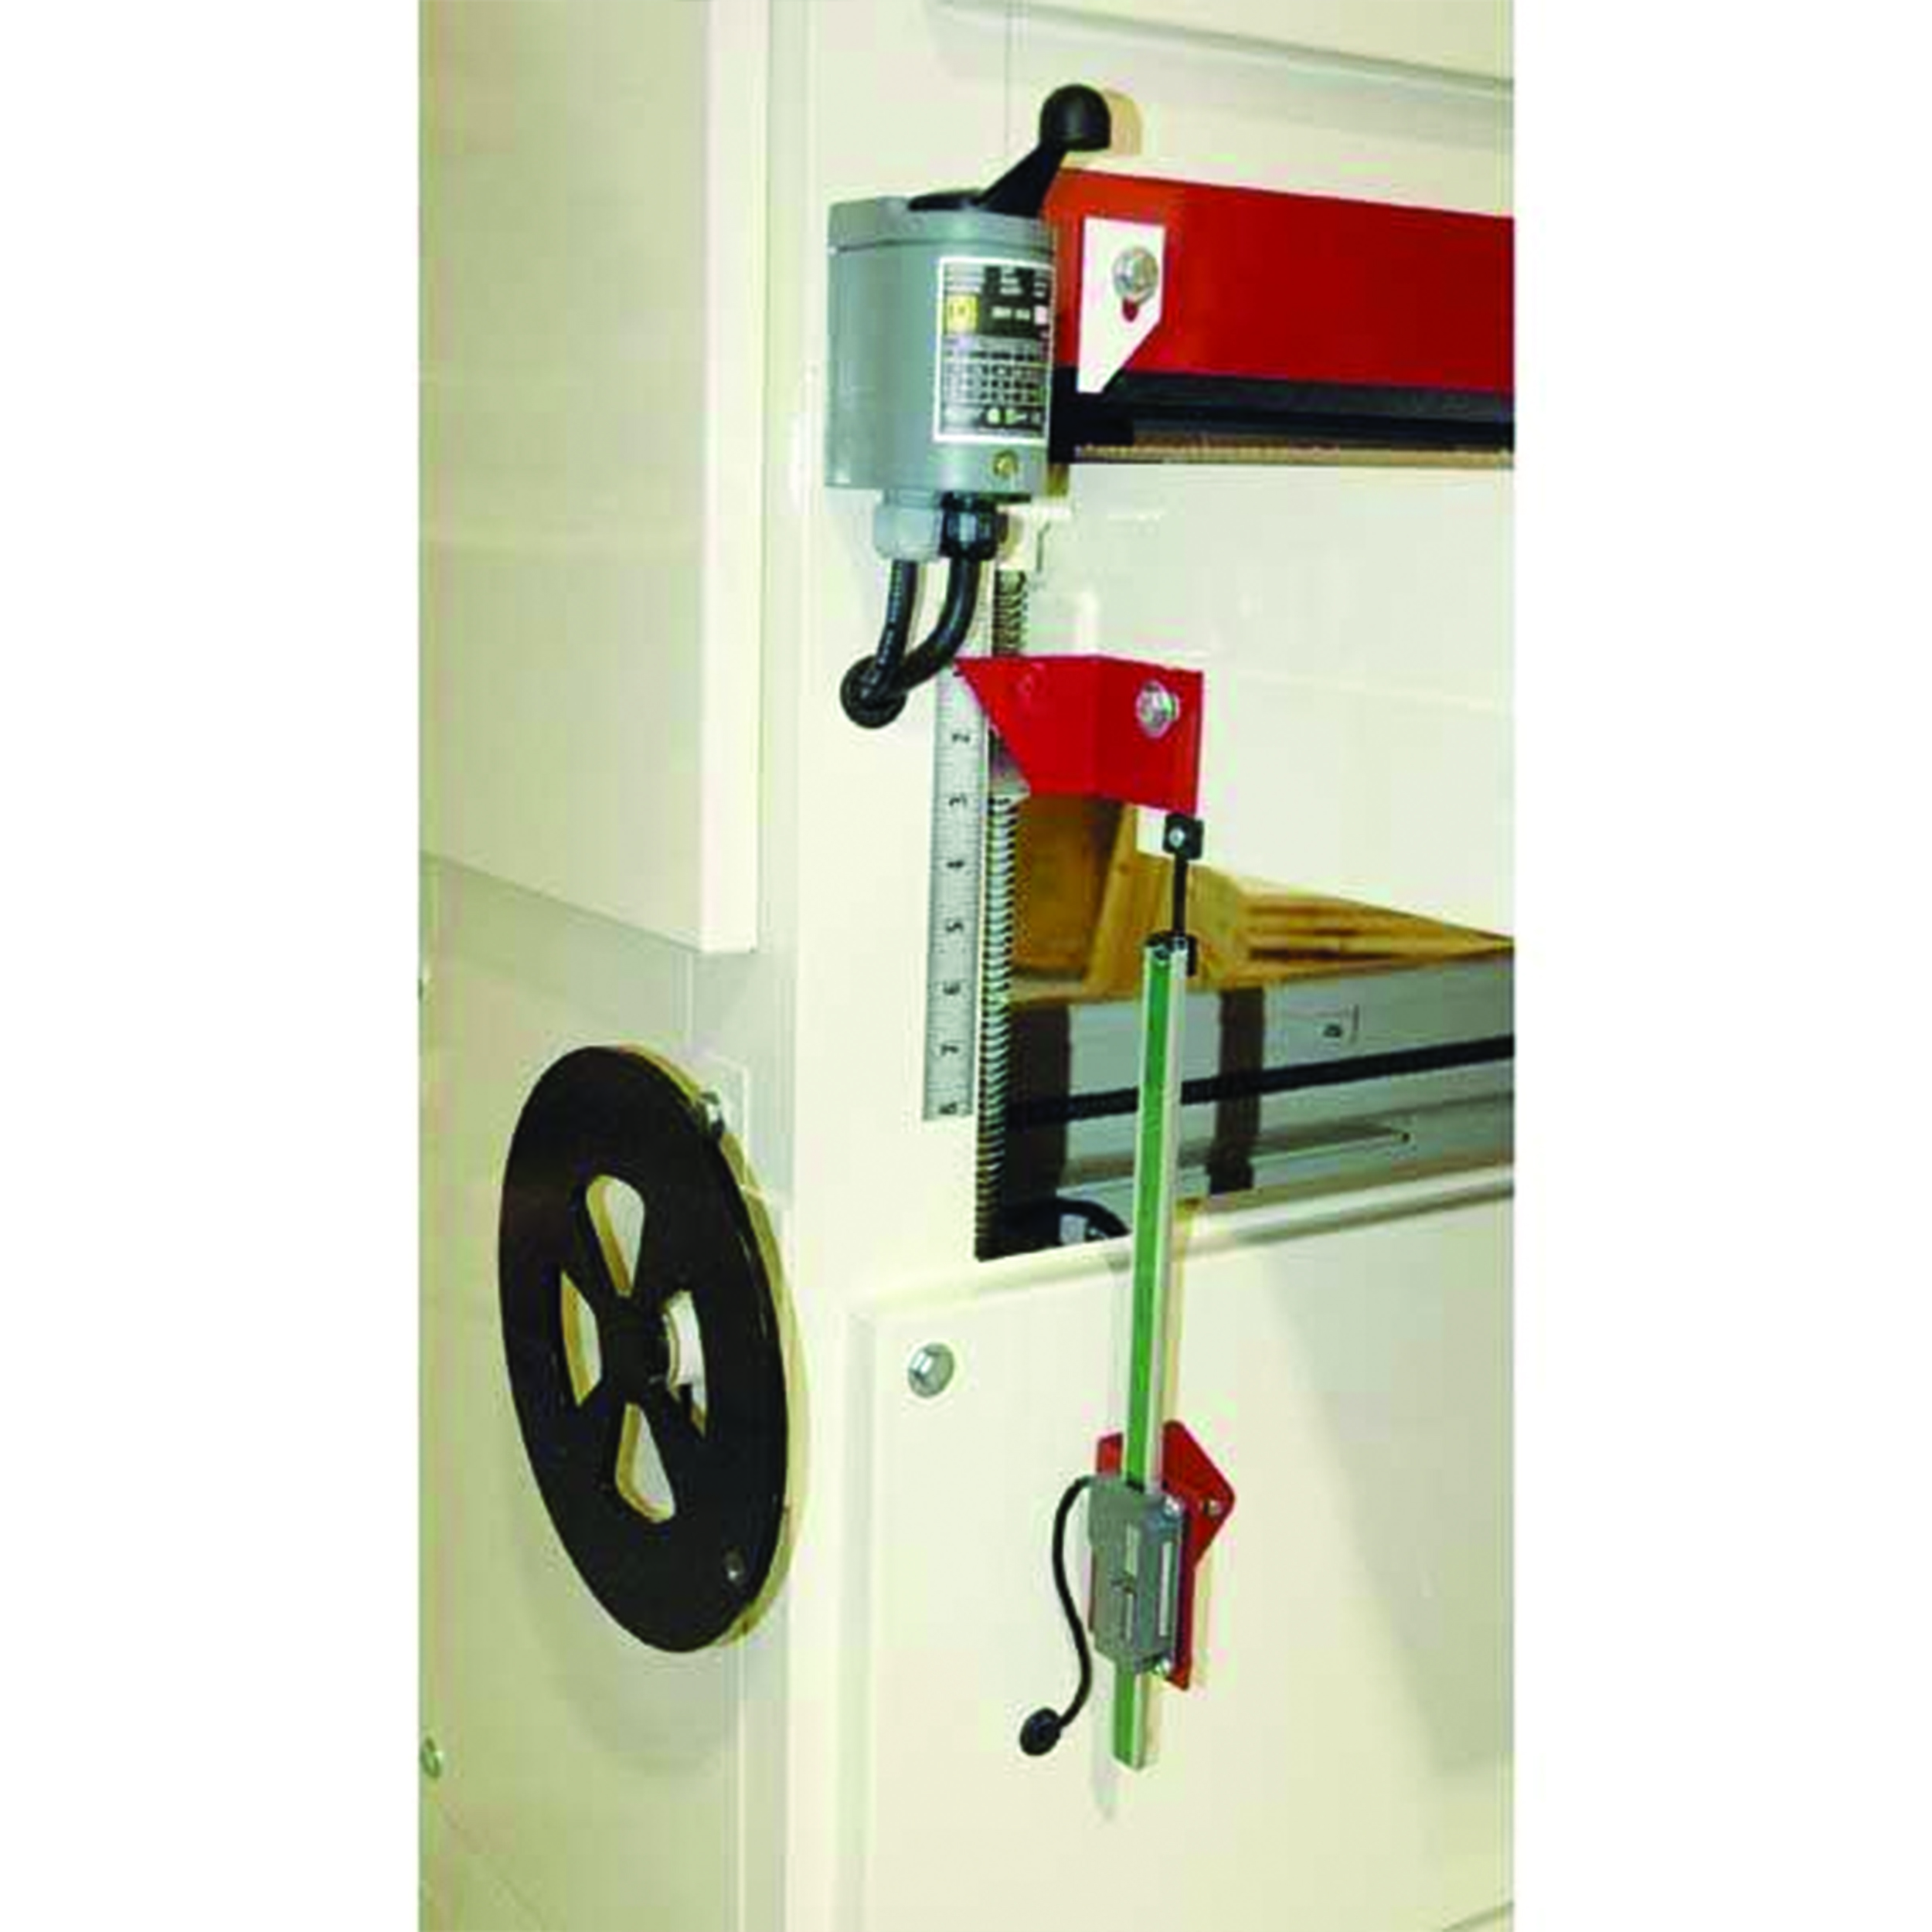 Power Lift Table for Safety Speed Wide Belt Sanders